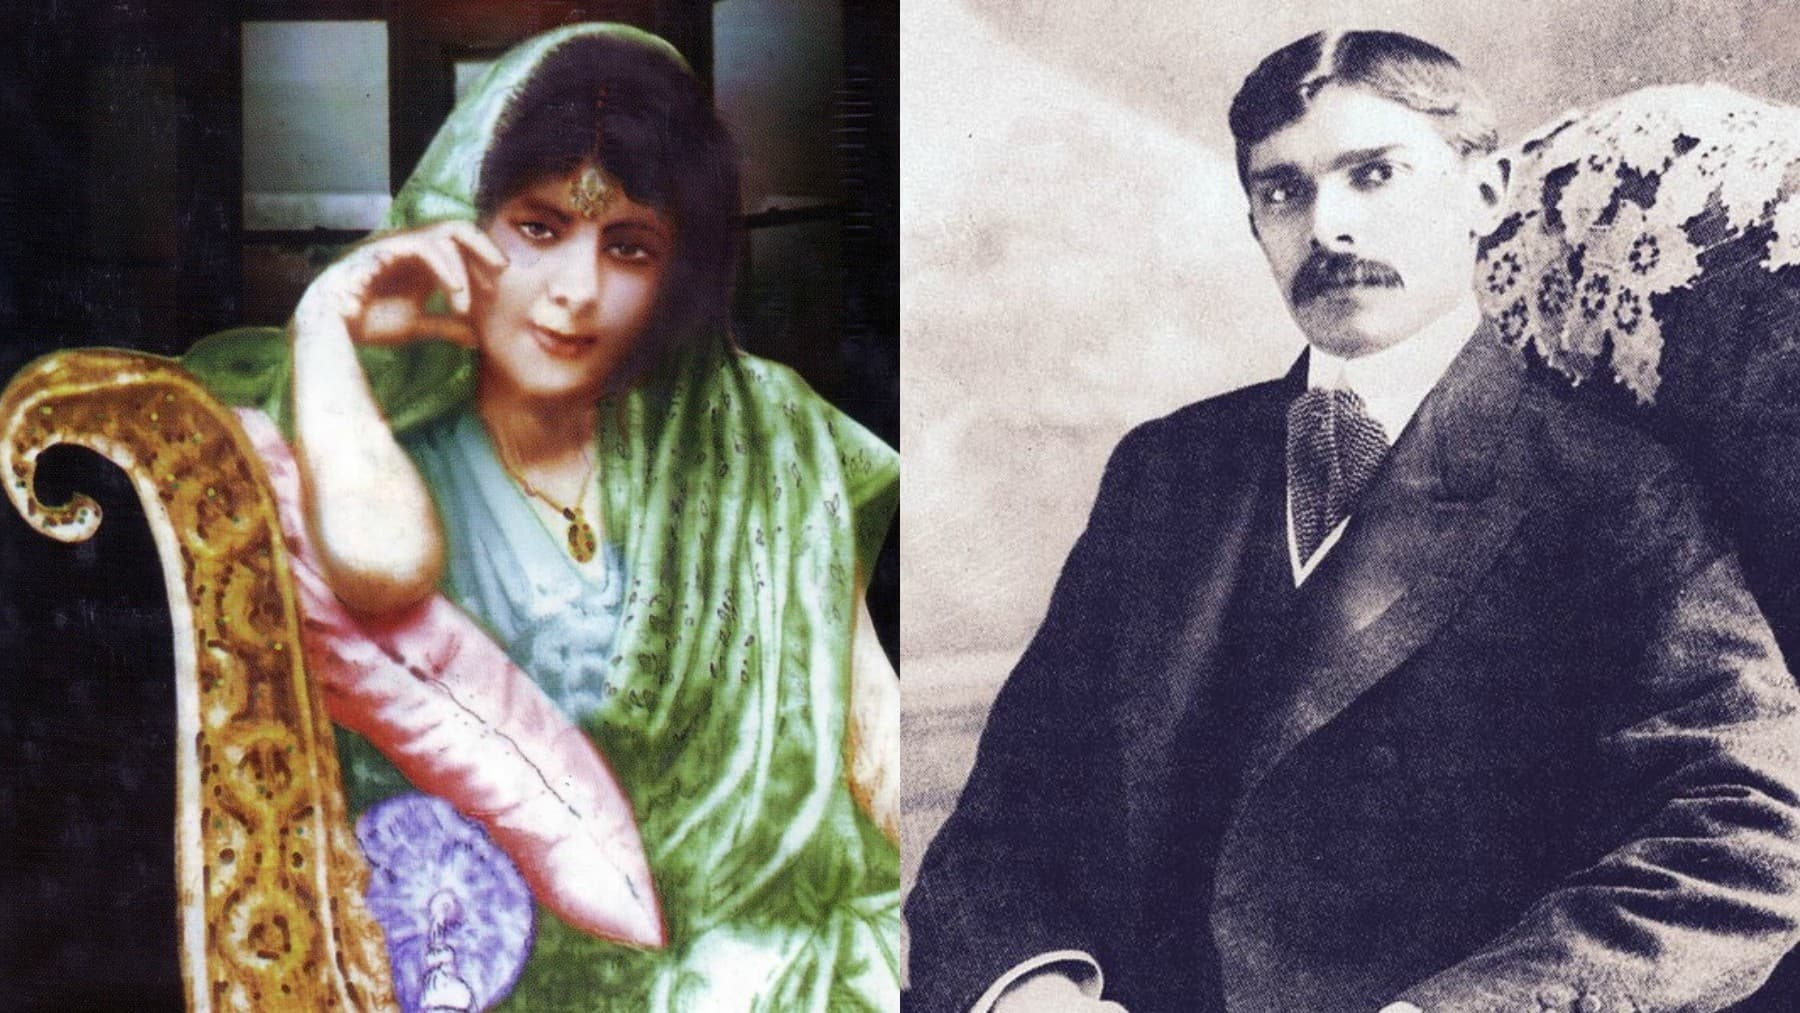 Ruttie Jinnah had limited success in breaking down the walls Jinnah had built around him; still, she was the person who knew him best